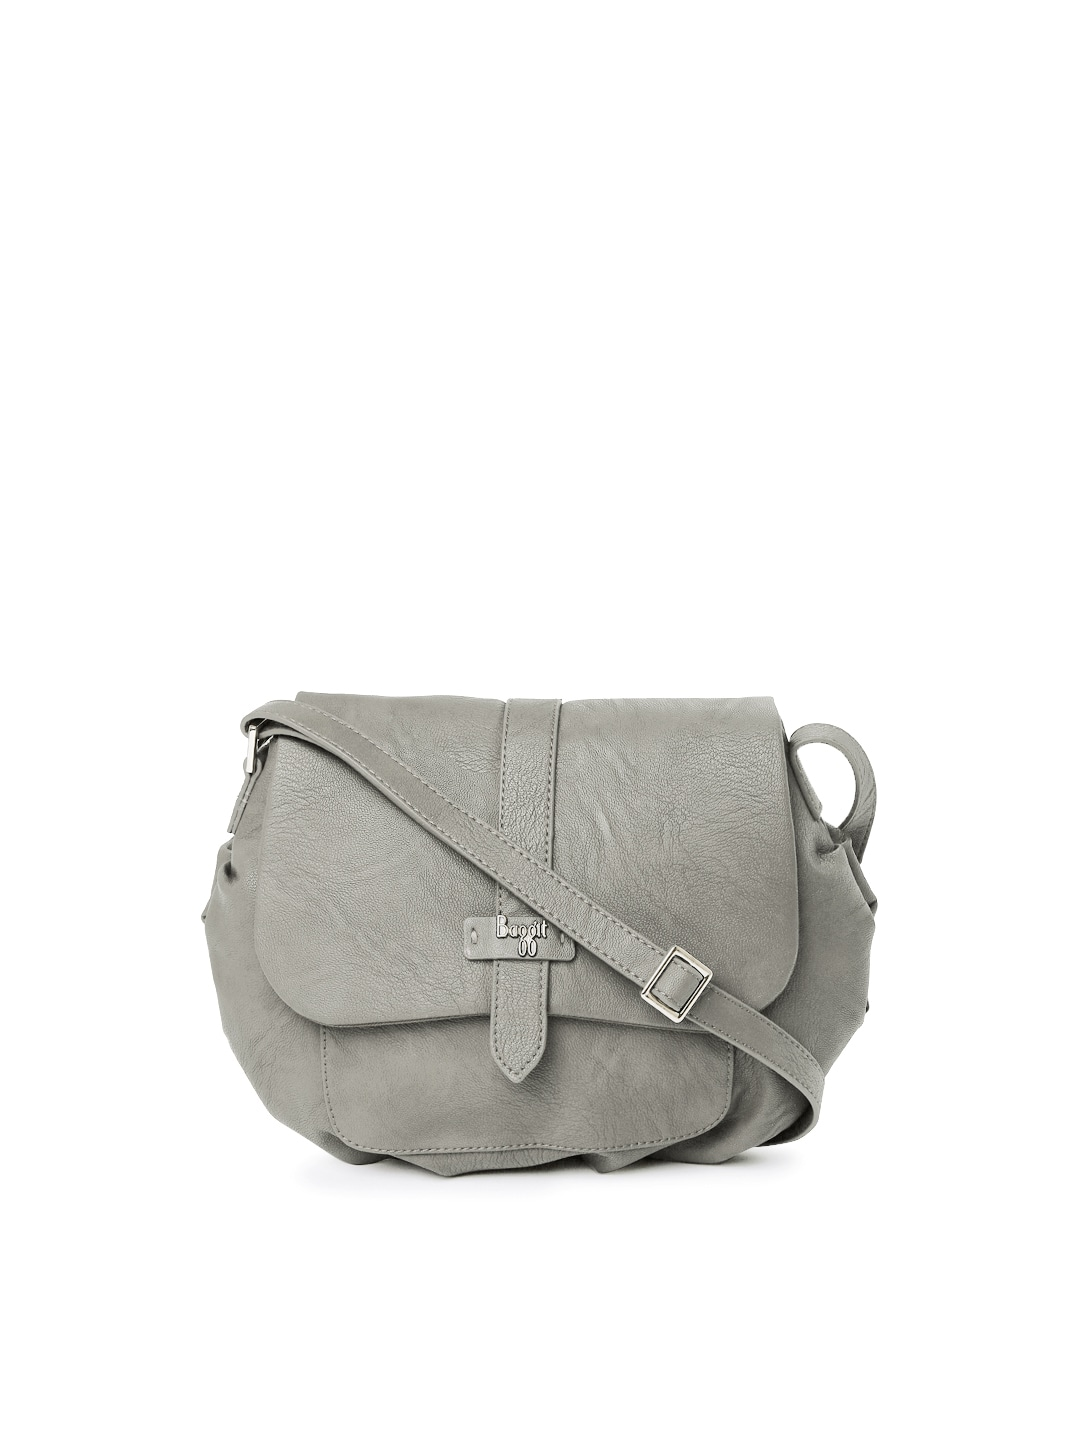 bb399fa5b8b Baggit 8903414577736 Taupe Sling Bag - Best Price in India | priceiq.in